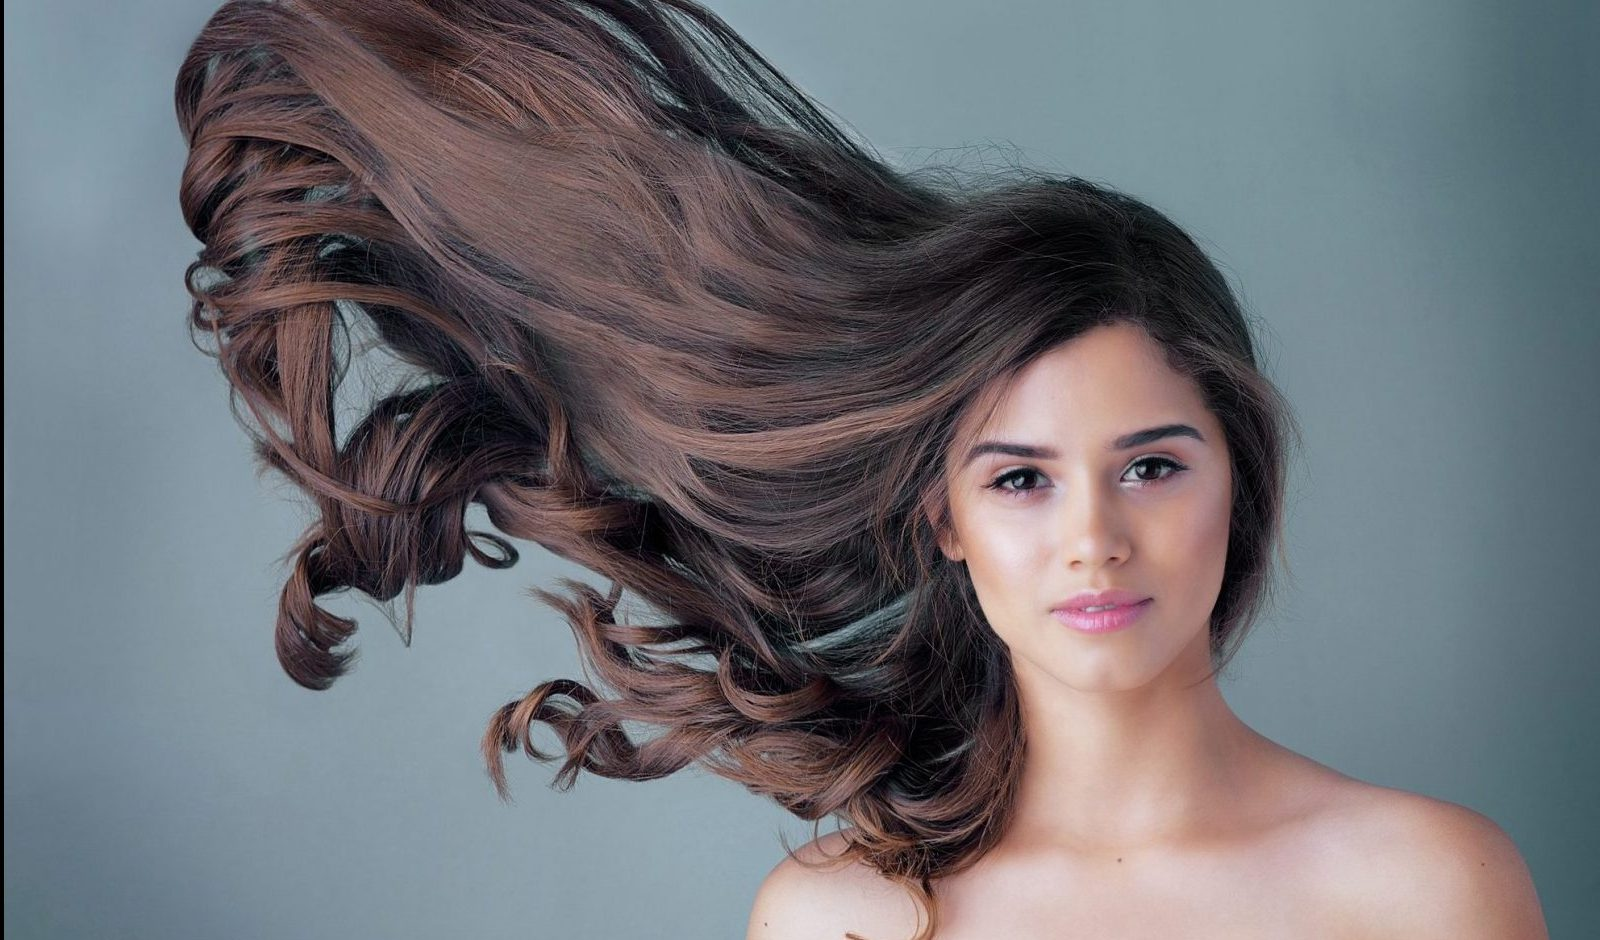 woman long brown healthy hair in the air motion gray blue background what are the best vitamins for hair growth viviscal hair blog